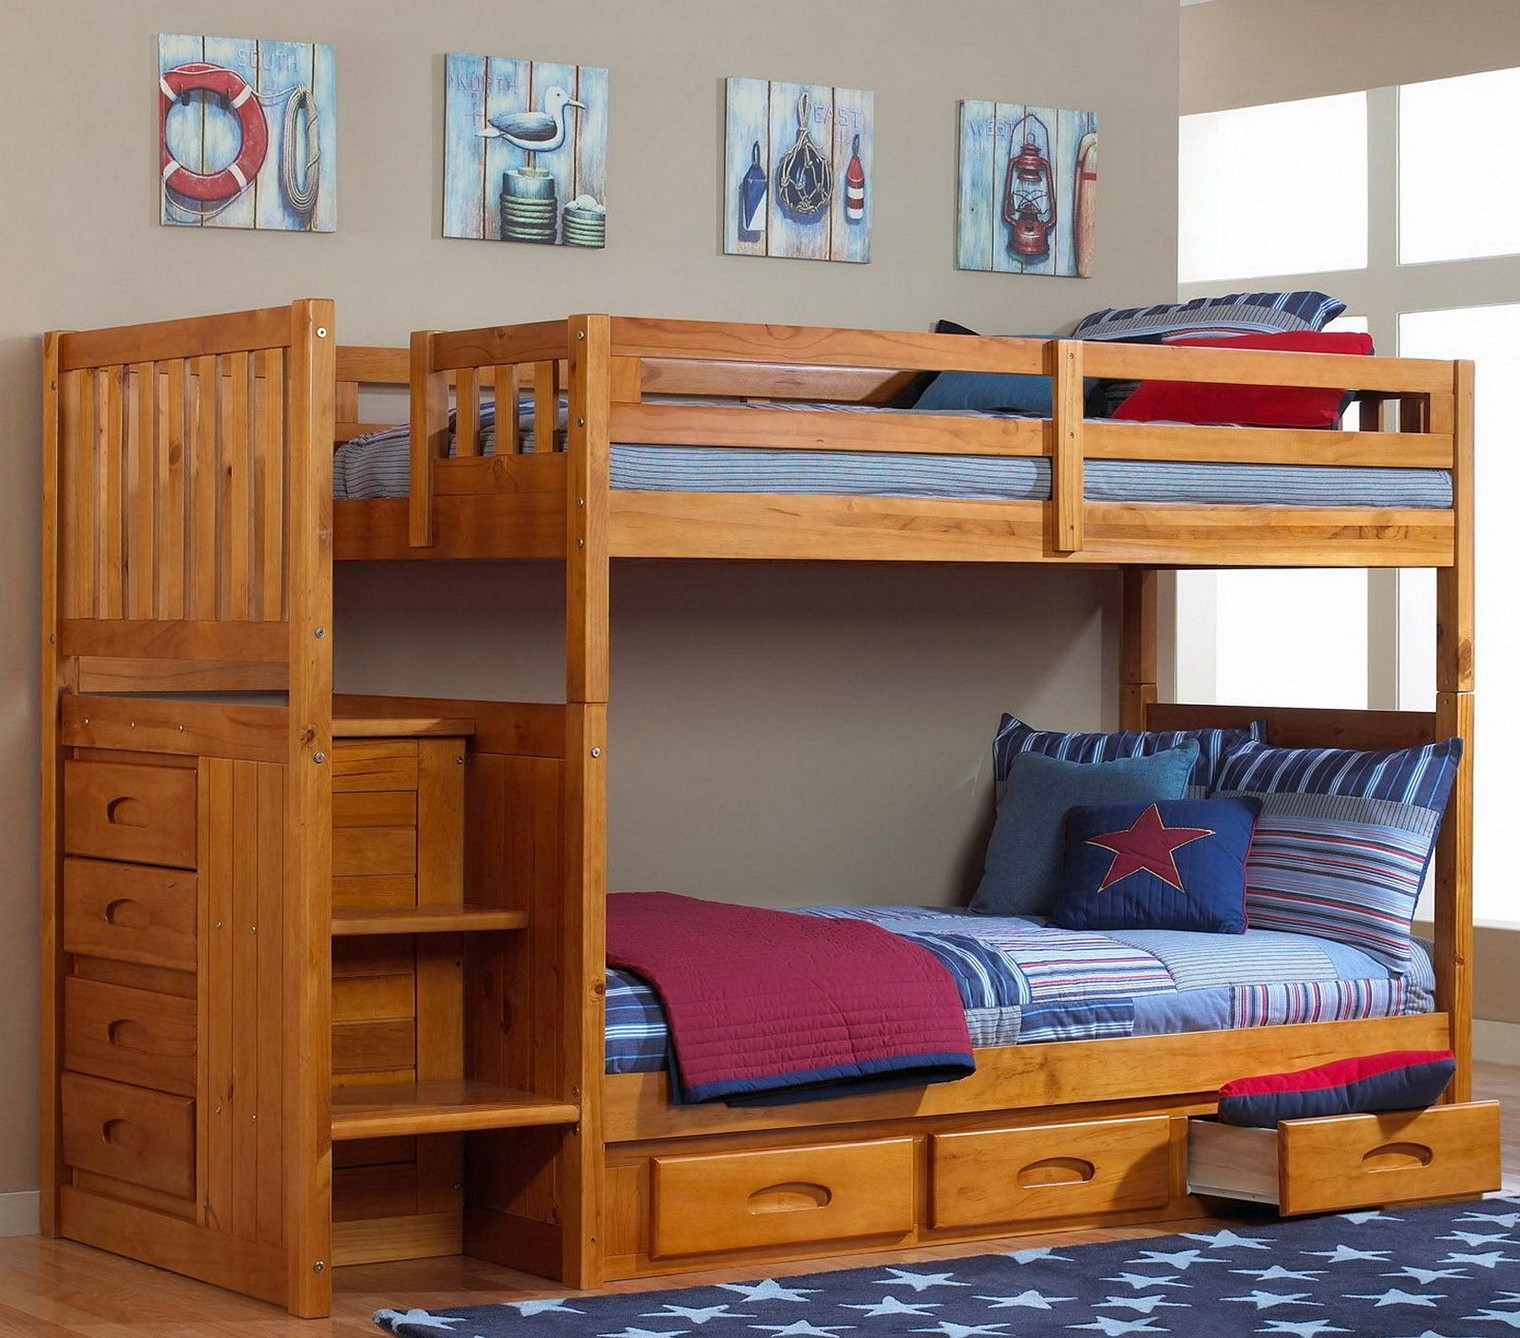 double deck design for small spaces bunk plans pdf with stairs bunker study  table kids room pepperfry bunk beds